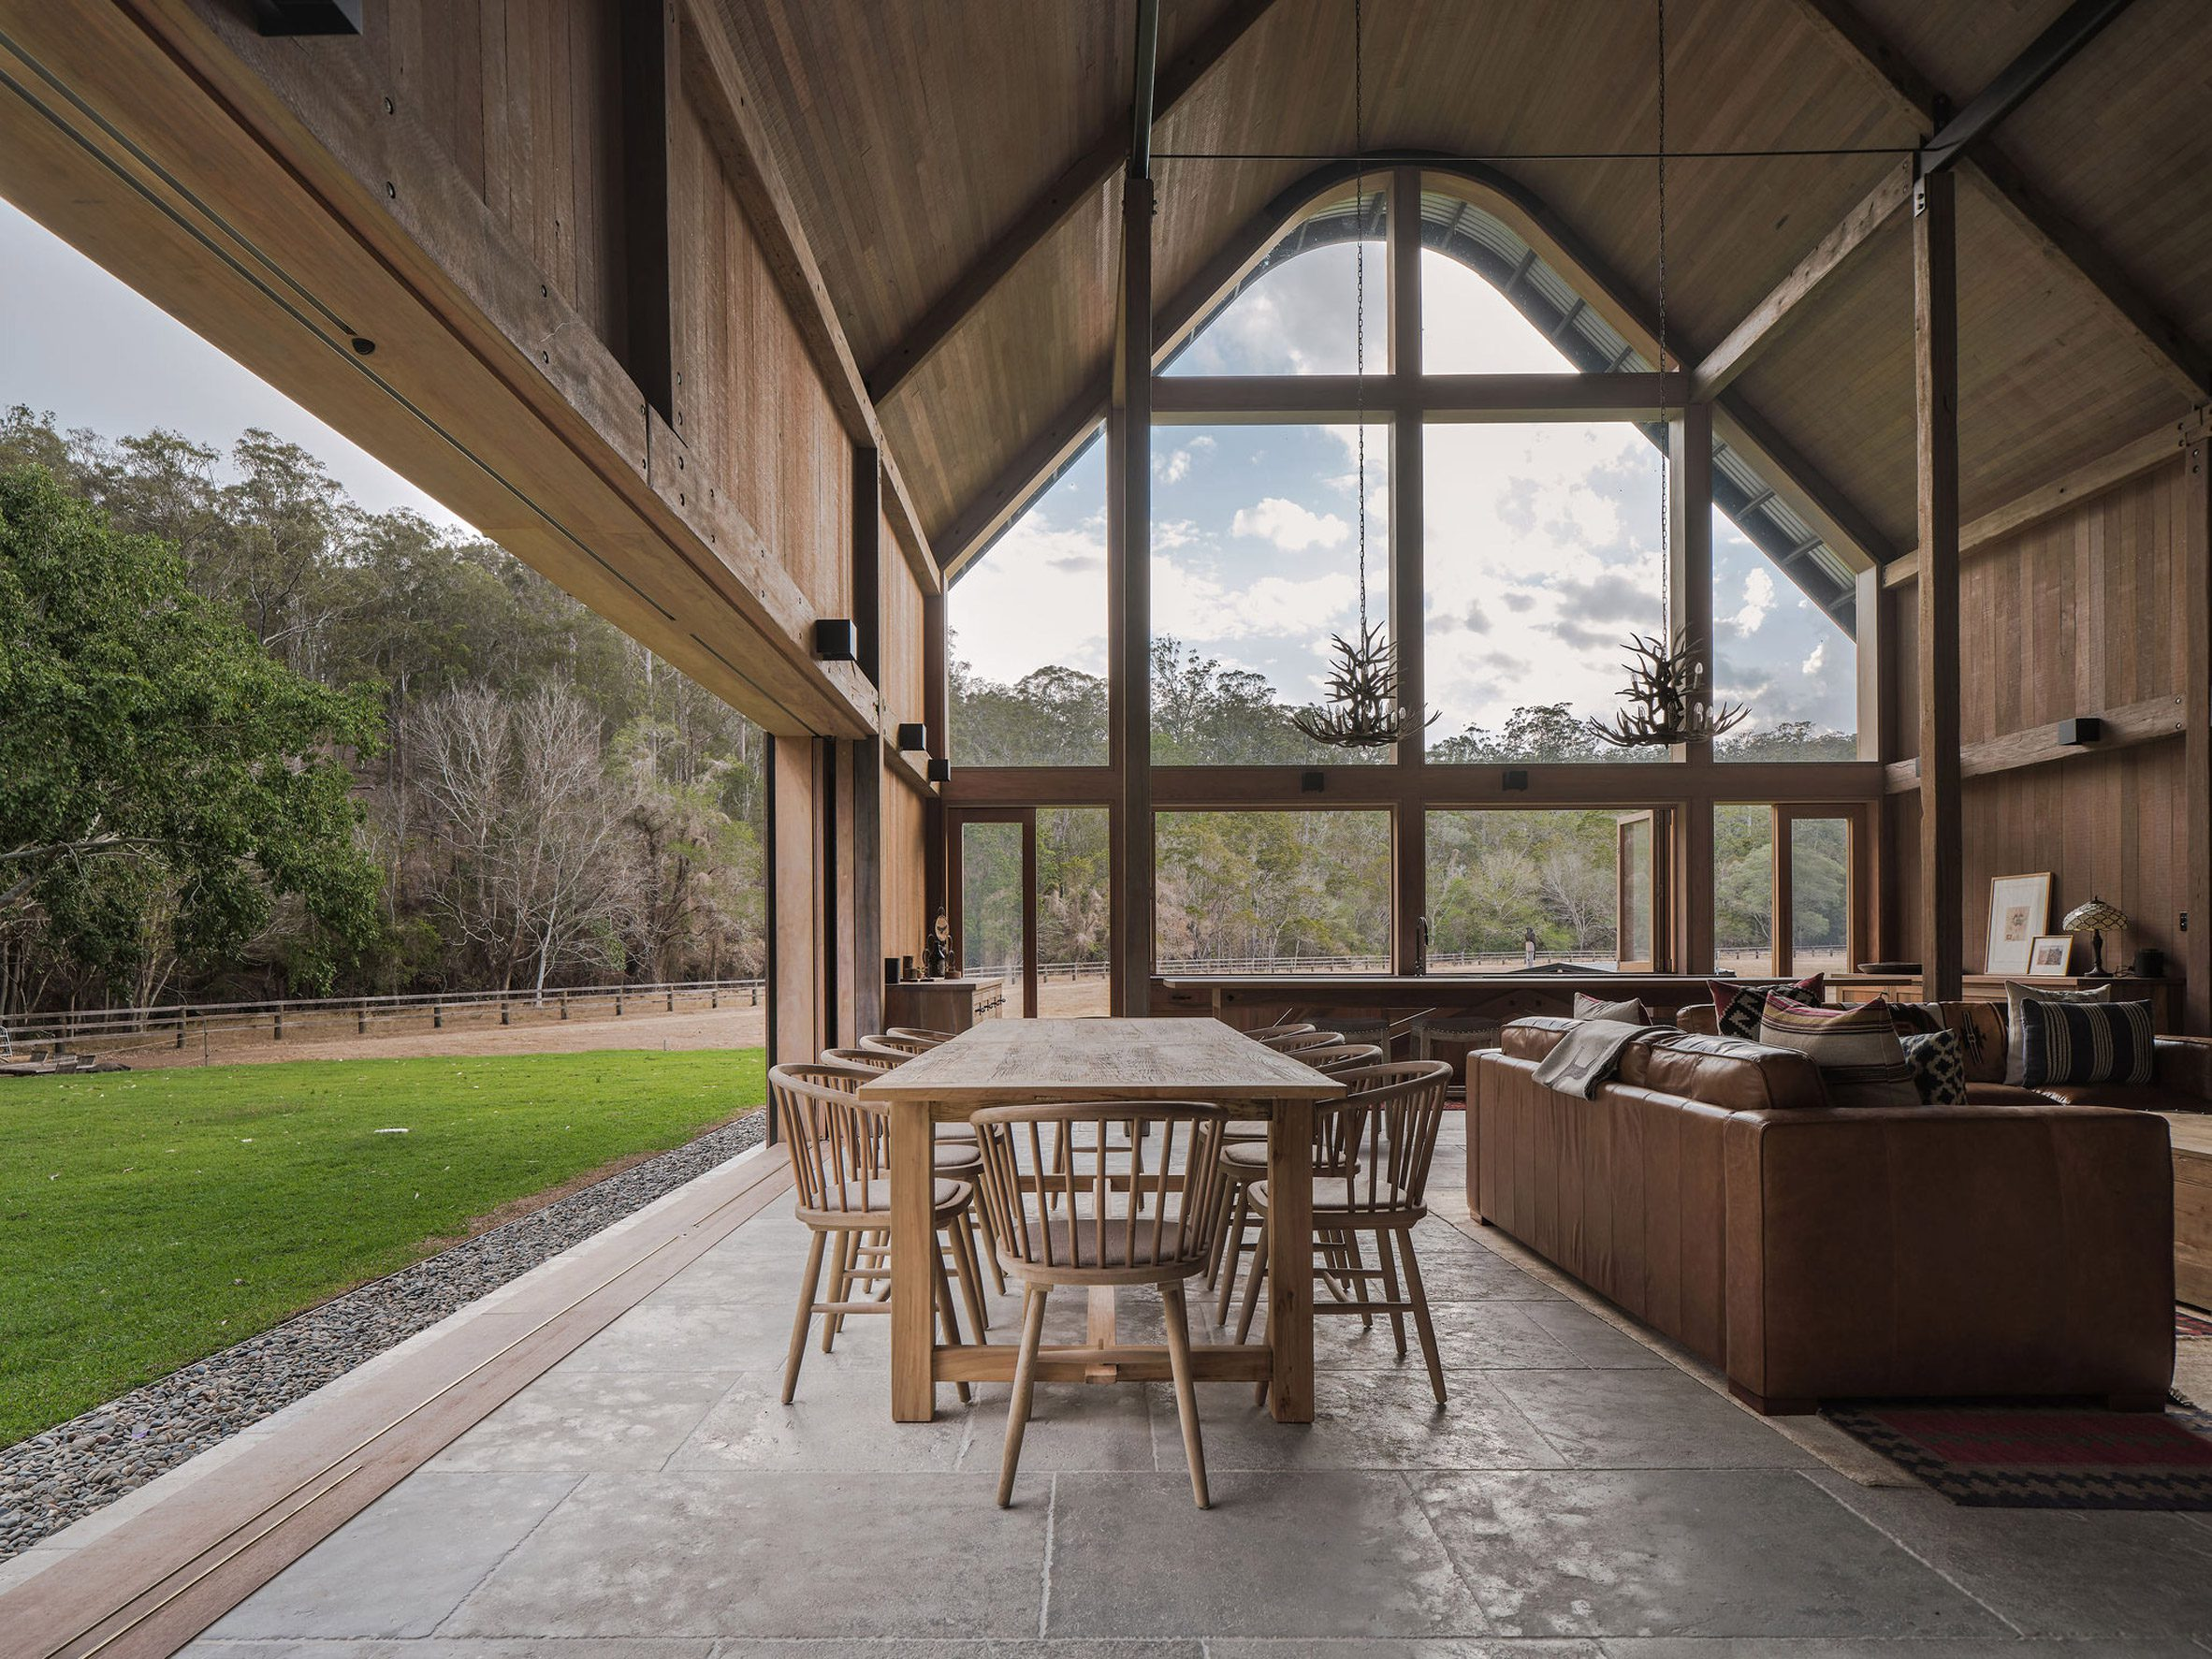 This Australian barn-like house has a gabled wooden roof